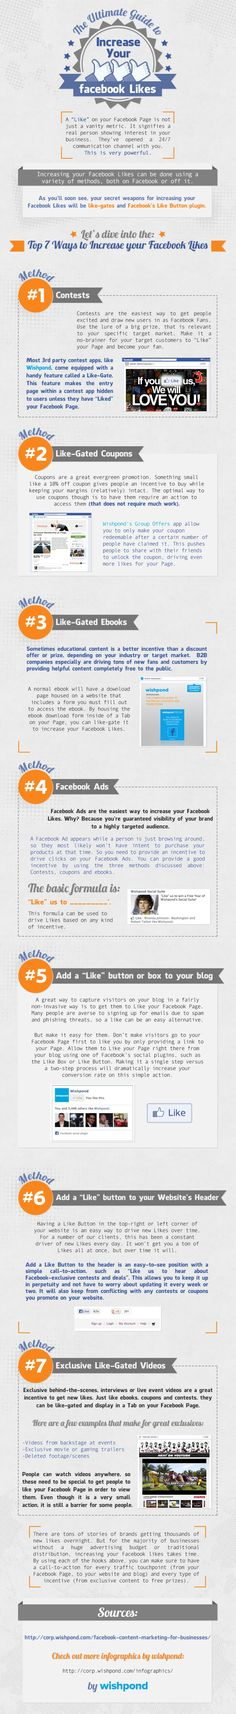 The ultimate guide to increase your FaceBook likes #infografia #infographic #socialmedia